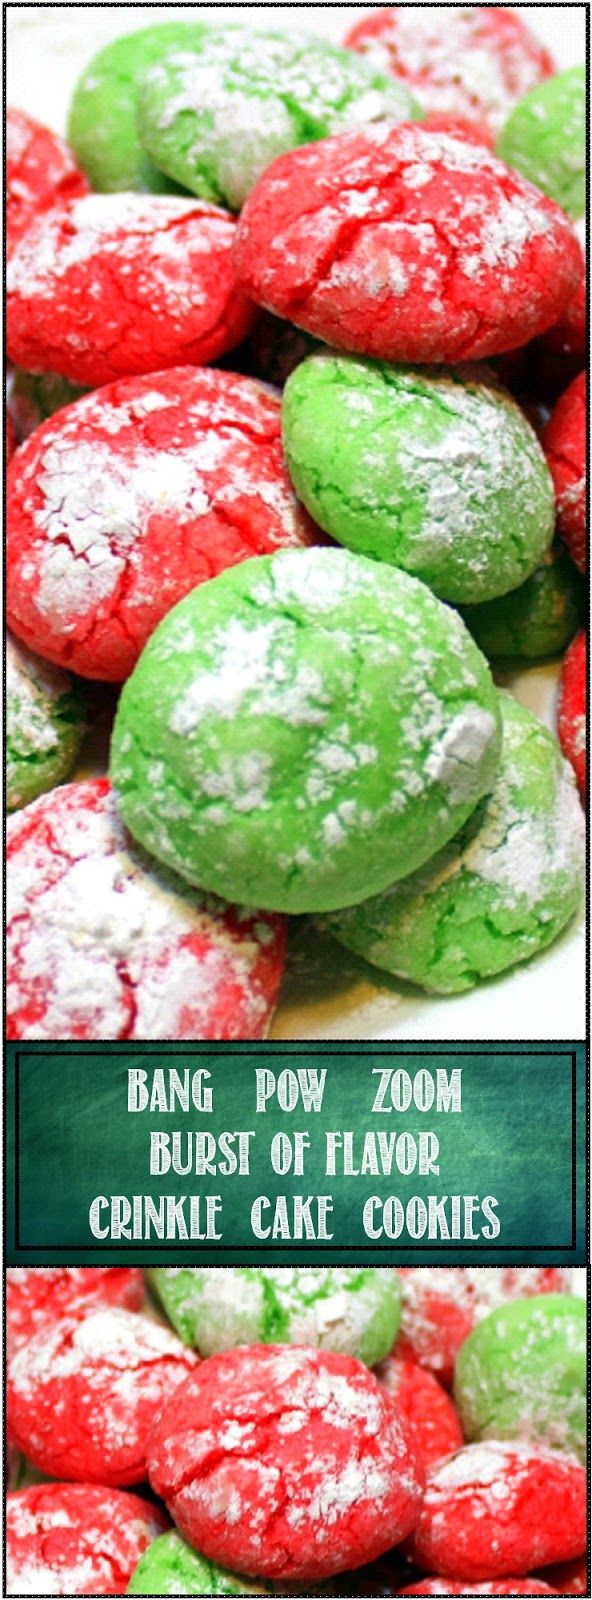 BANG - POW - ZOOM Burst of Flavor CRINKLE COOKIE These are called BANG POW ZOOM Burst cookies for a reason... There is a secret ingredient (easy to find) added that makes each bite BURST with extra flavor. No Boring cake cookie, the secret colors them (no food coloring needed) and makes each color a distinctive flavor (red = Raspberry and Green = Lime. BUT these are just about the EASIEST COOKIE to DIY BAKE. Only a handful of ingredients, wonderful look and presentation